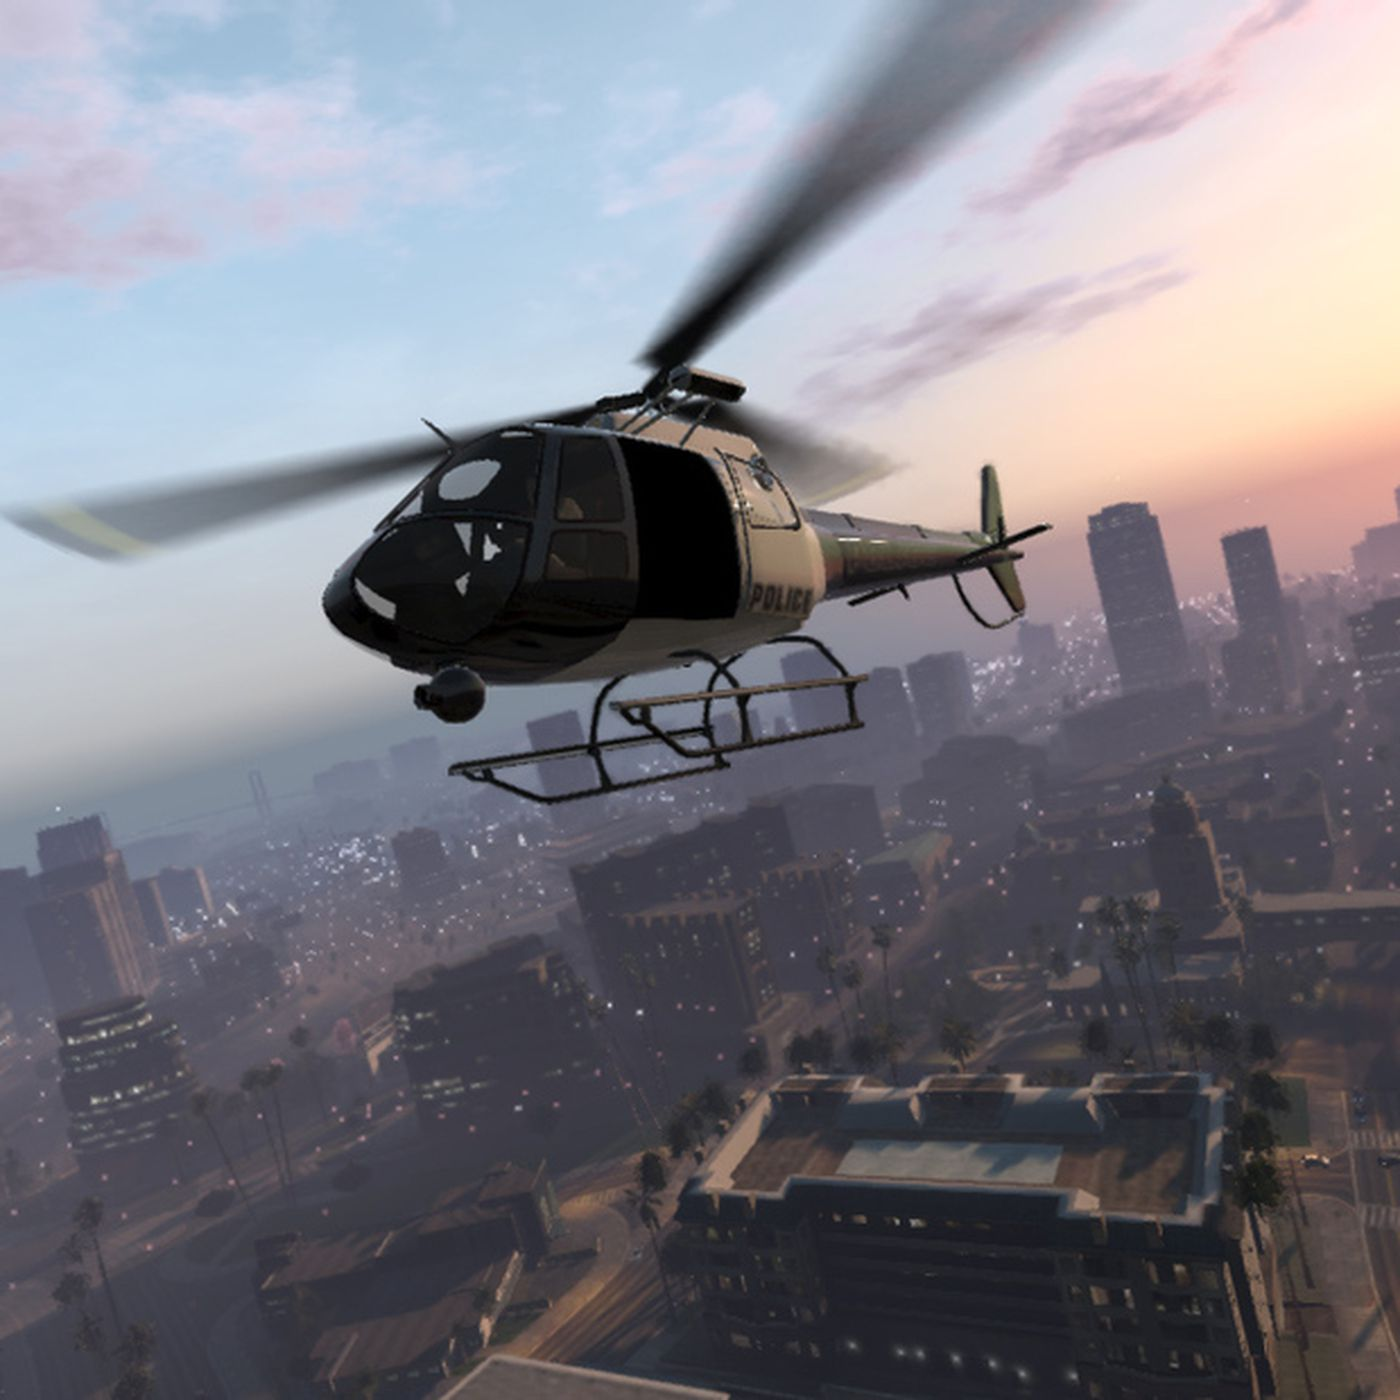 Wavves' new music video was shot in Grand Theft Auto V - The